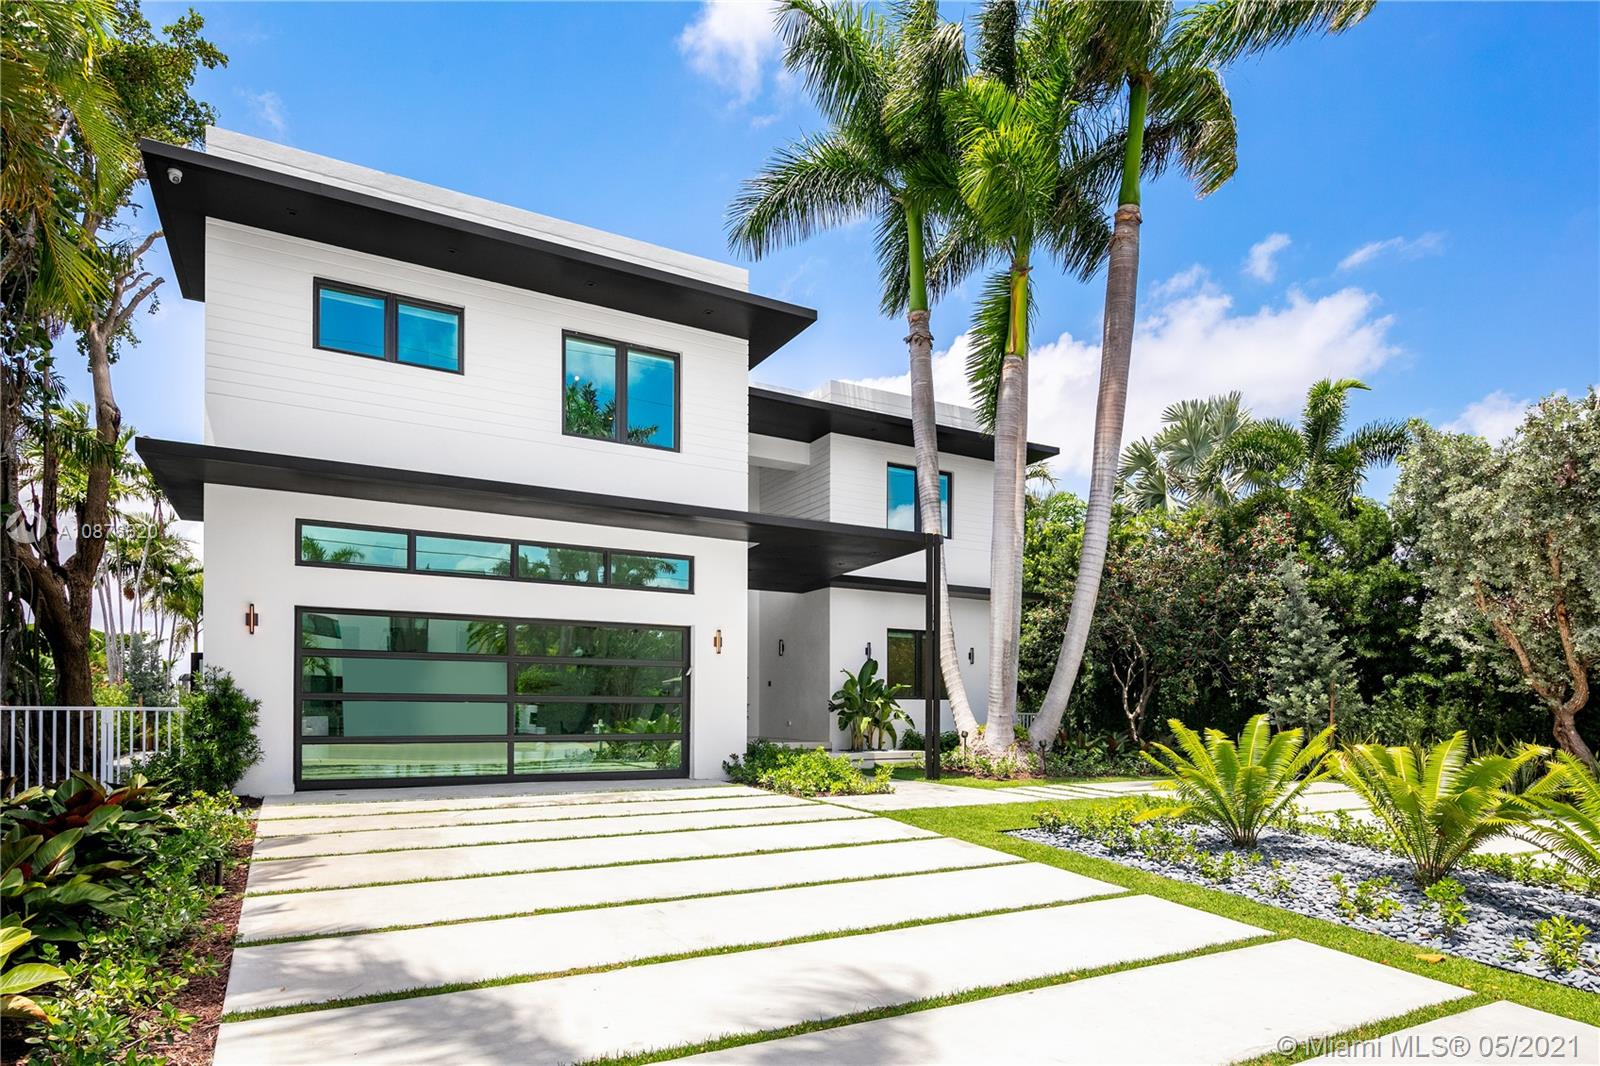 Situated on the Open Bay w/ endless water & west sunset views, this Completely Rebuilt Contemporary home features 7100 SF of Living Space complimented by top of the line finishes throughout. Enjoy a perfect layout for family living & entertainment which features 8 BD, 8.5 BA + home office. The 1st floor sets the tone w/ 60x60 porcelain tiles, one of a kind staircase w/ live green wall & a Snaidero Kitchen comprised of wood taken from the pilasters of Venice. Upstairs you'll be blown away by the master retreat which boasts breathtaking western views of the bay & sunsets, private lounge / sitting room, bespoke master bathroom w/ steam shower & enormous his & hers closets. The backyard provides a tropical setting w/ pool & spa, new seawall cap & brand new 60' dock. Completion Winter 2020.